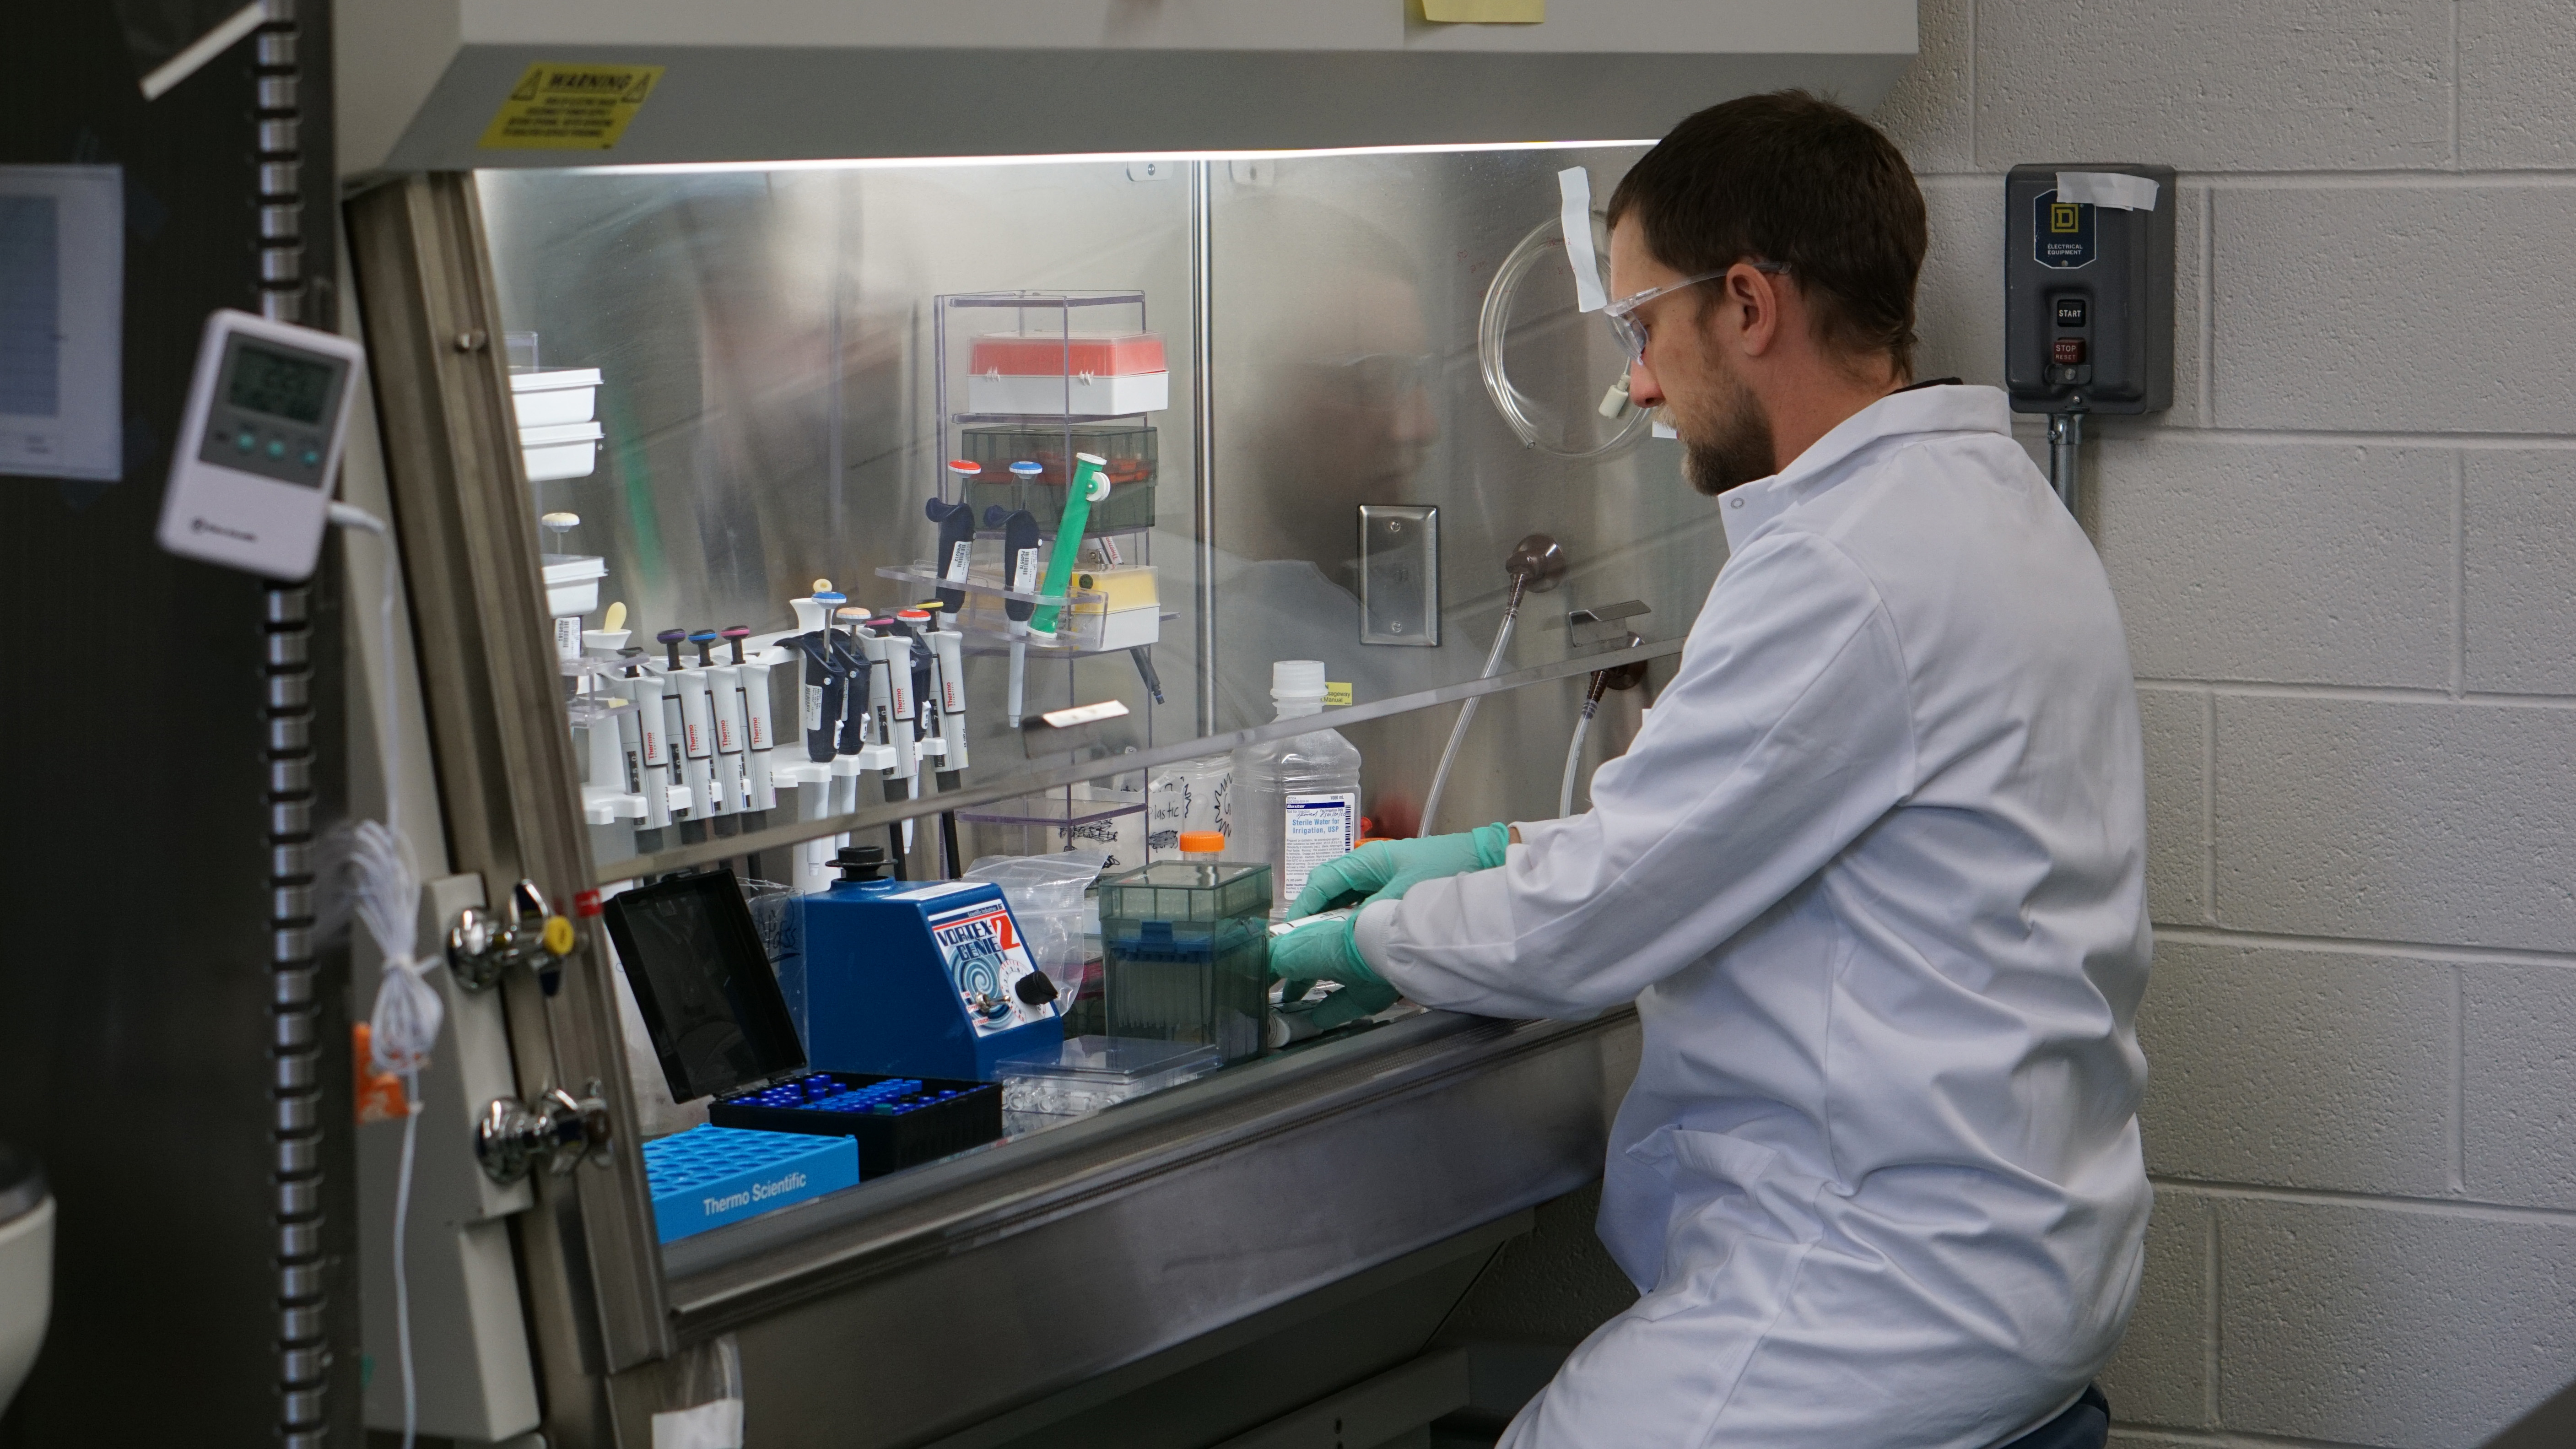 Kris Short working in a laboratory, seated at a lab work station.